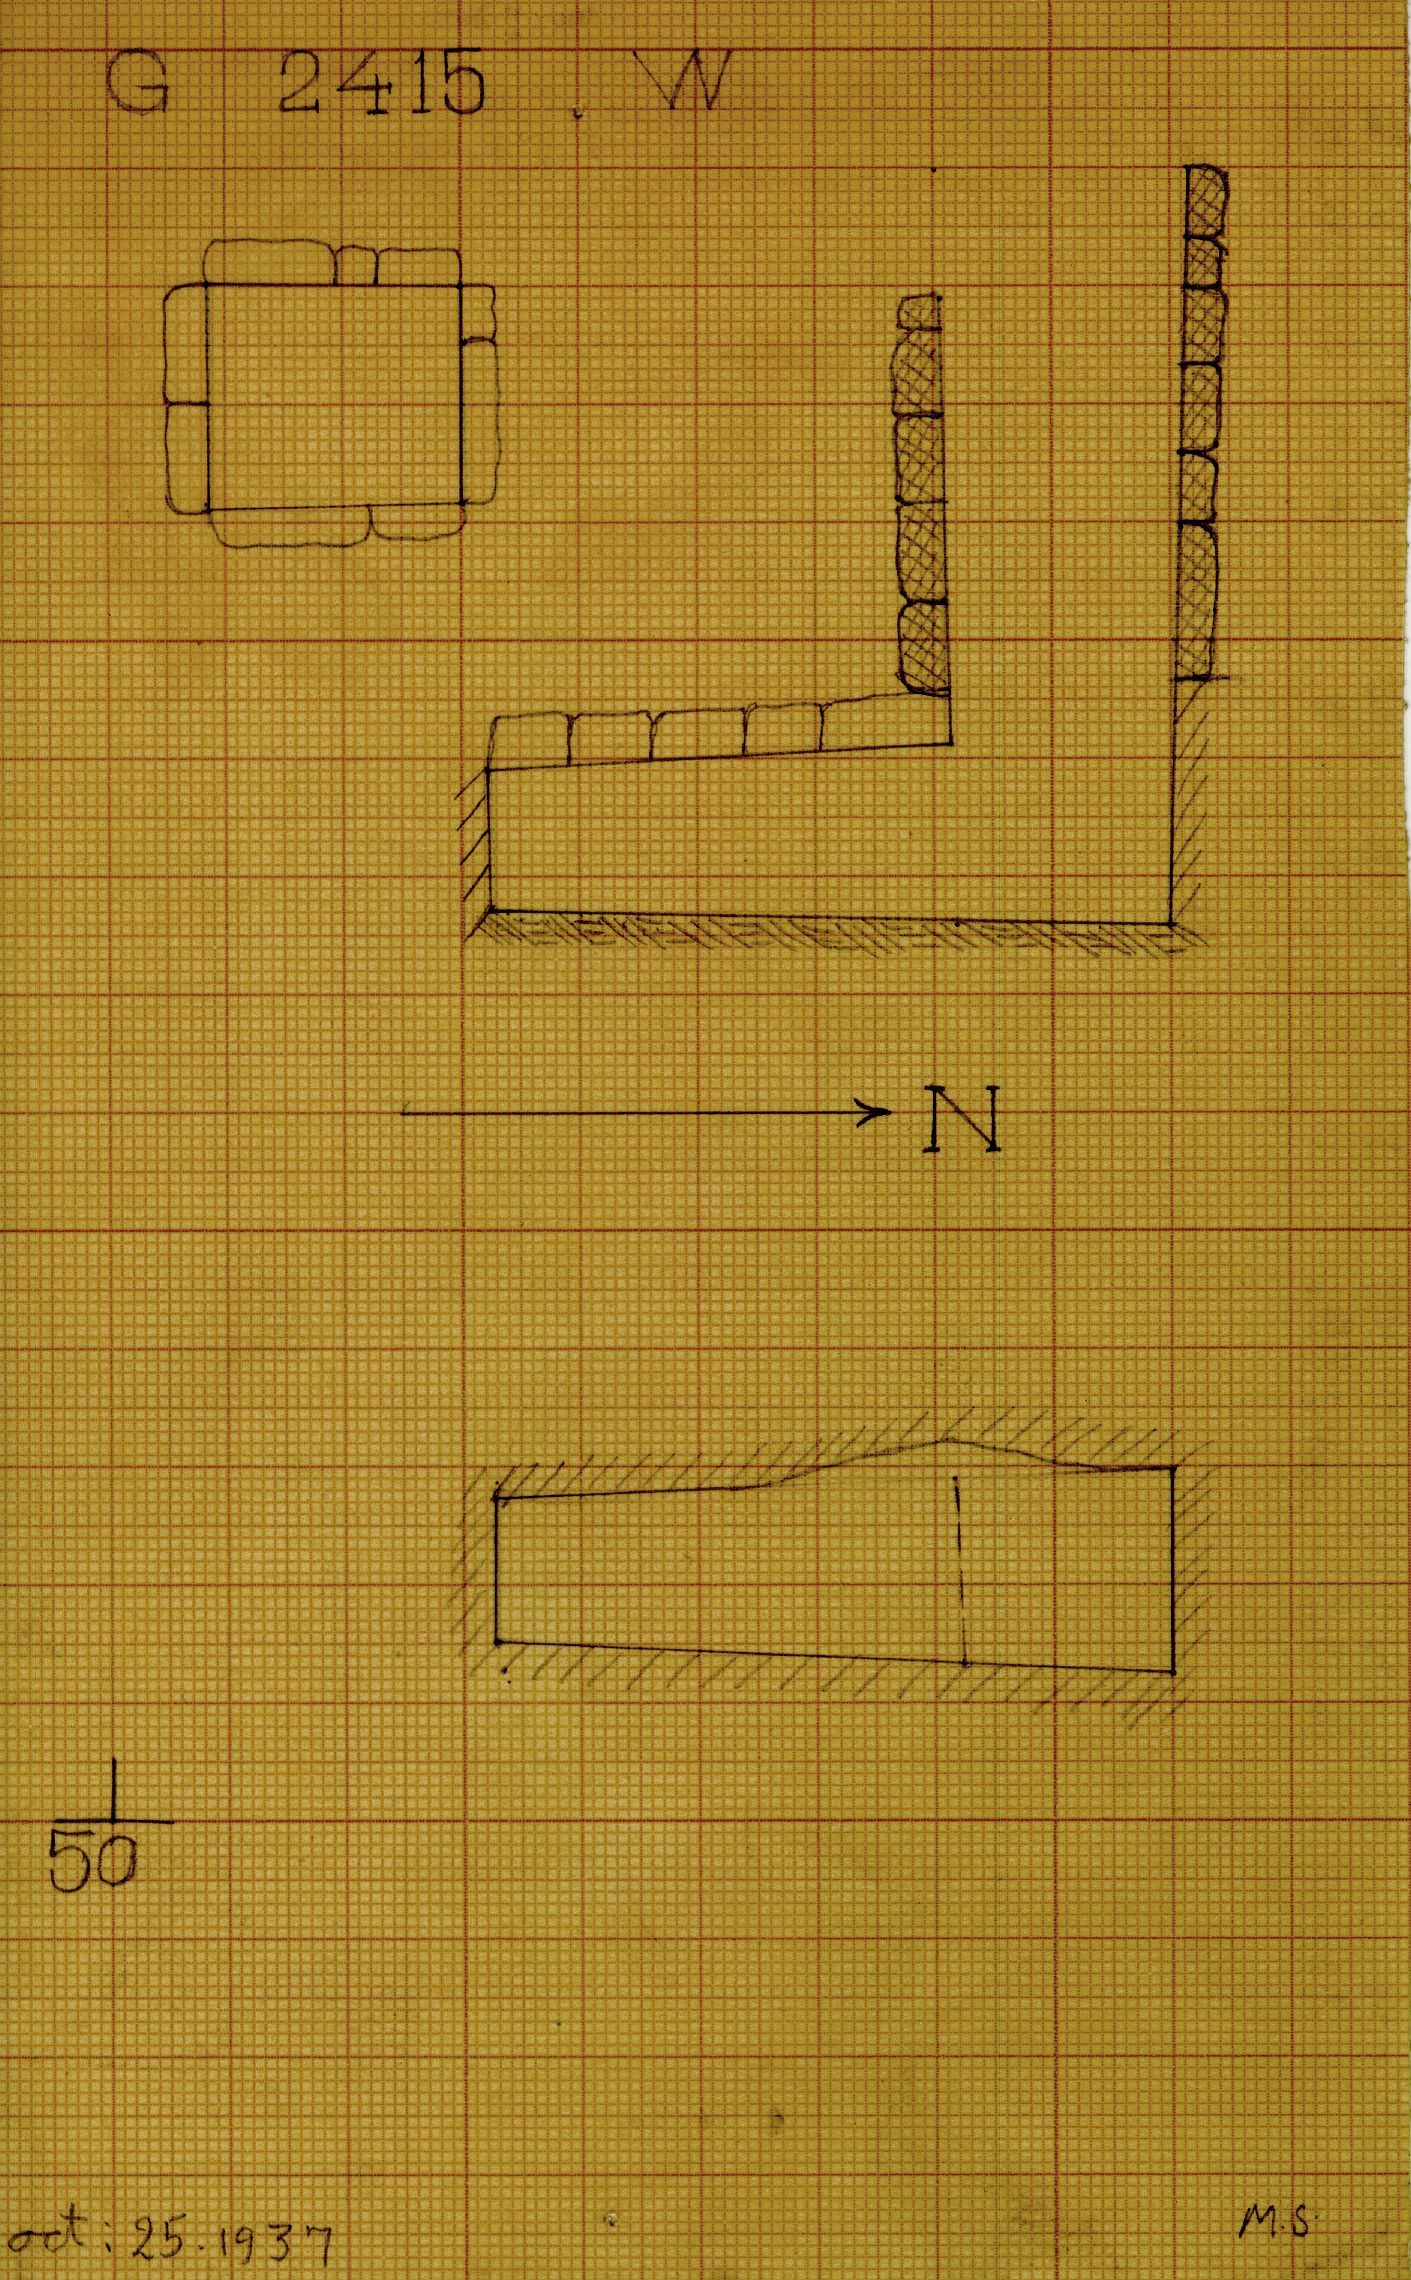 Maps and plans: G 2415, Shaft W